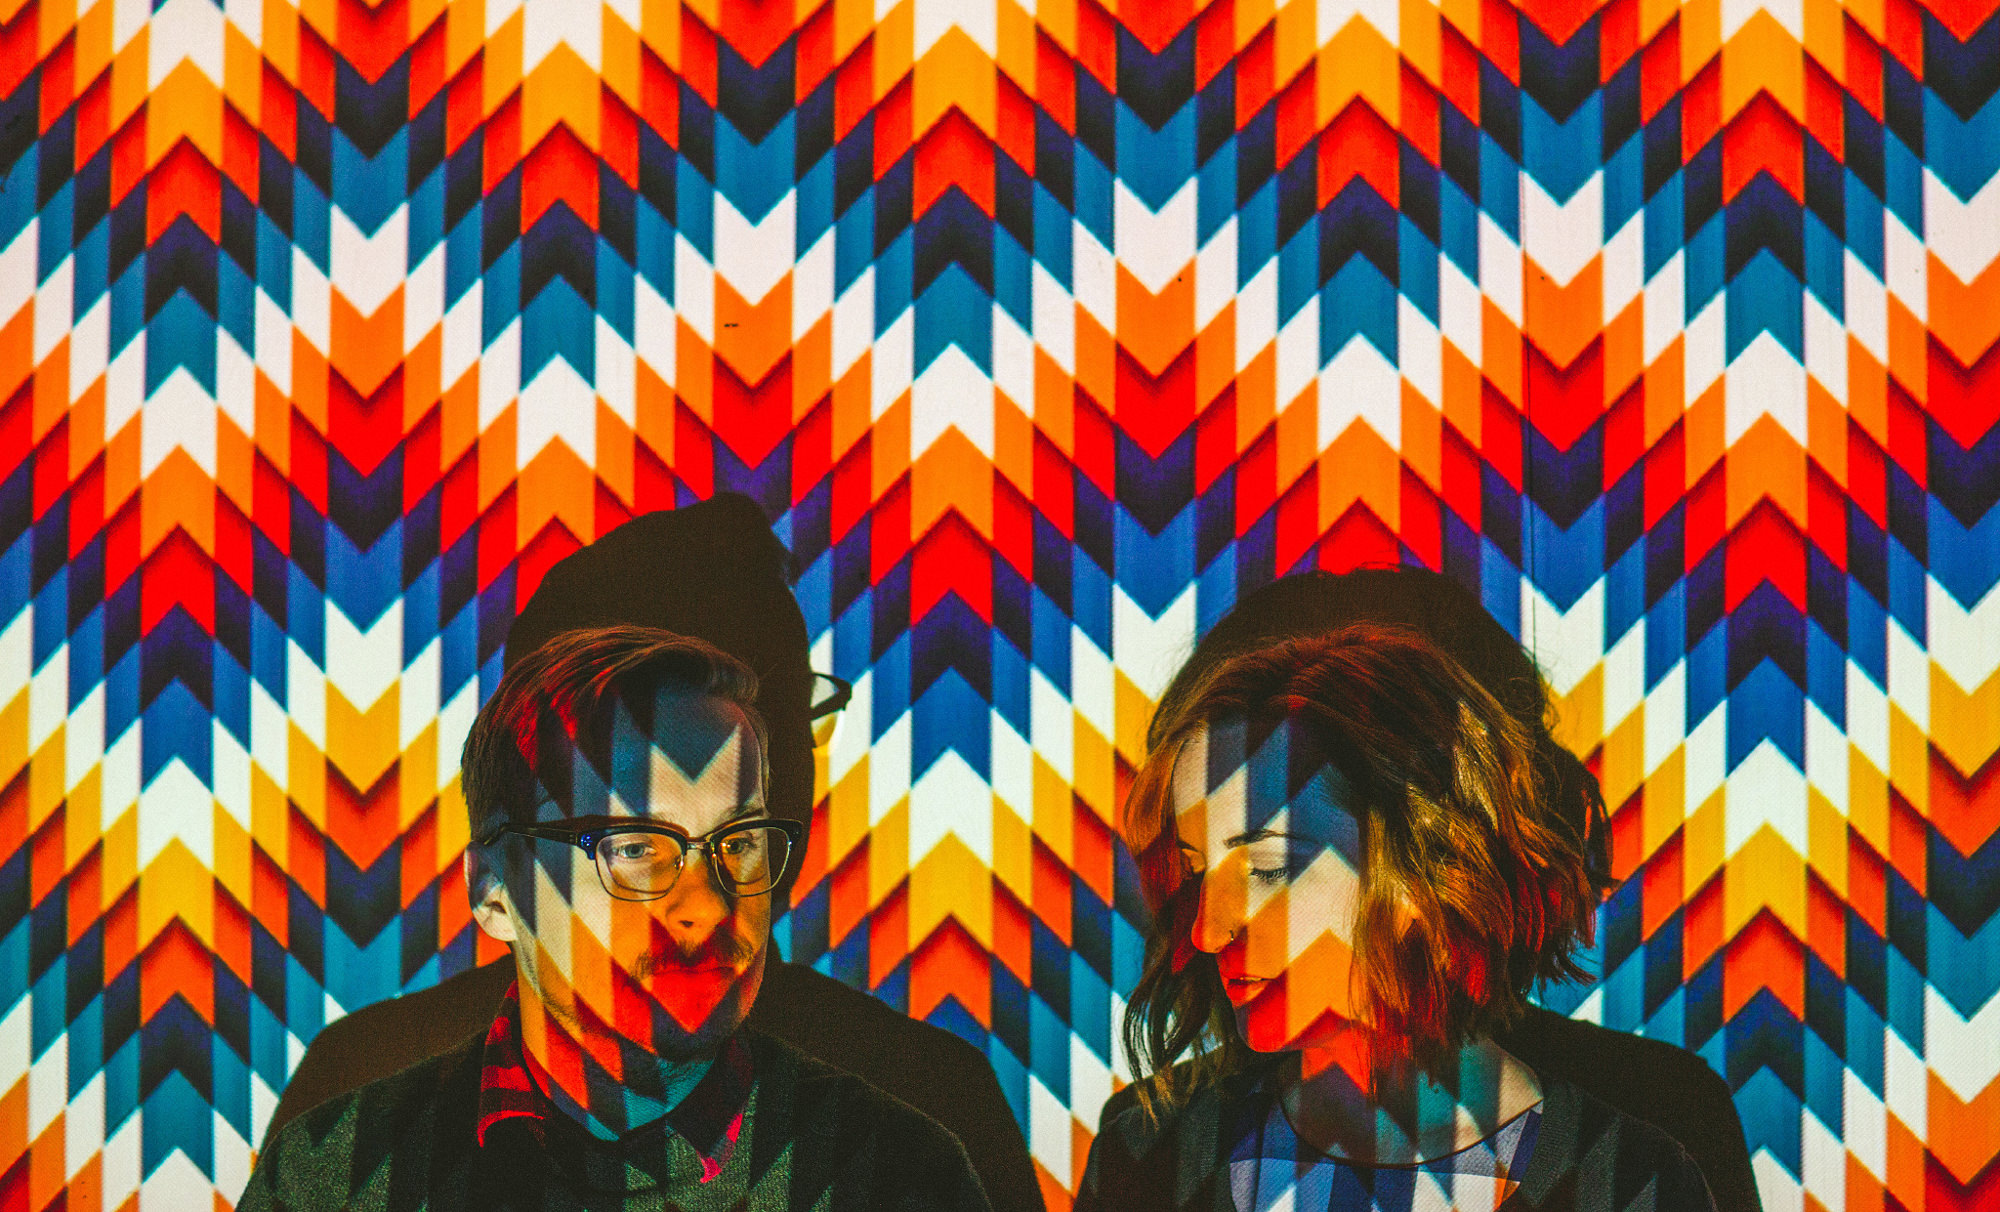 Engagement portrait of couple on colorful chevron light projected wall, by Jeff Newsom